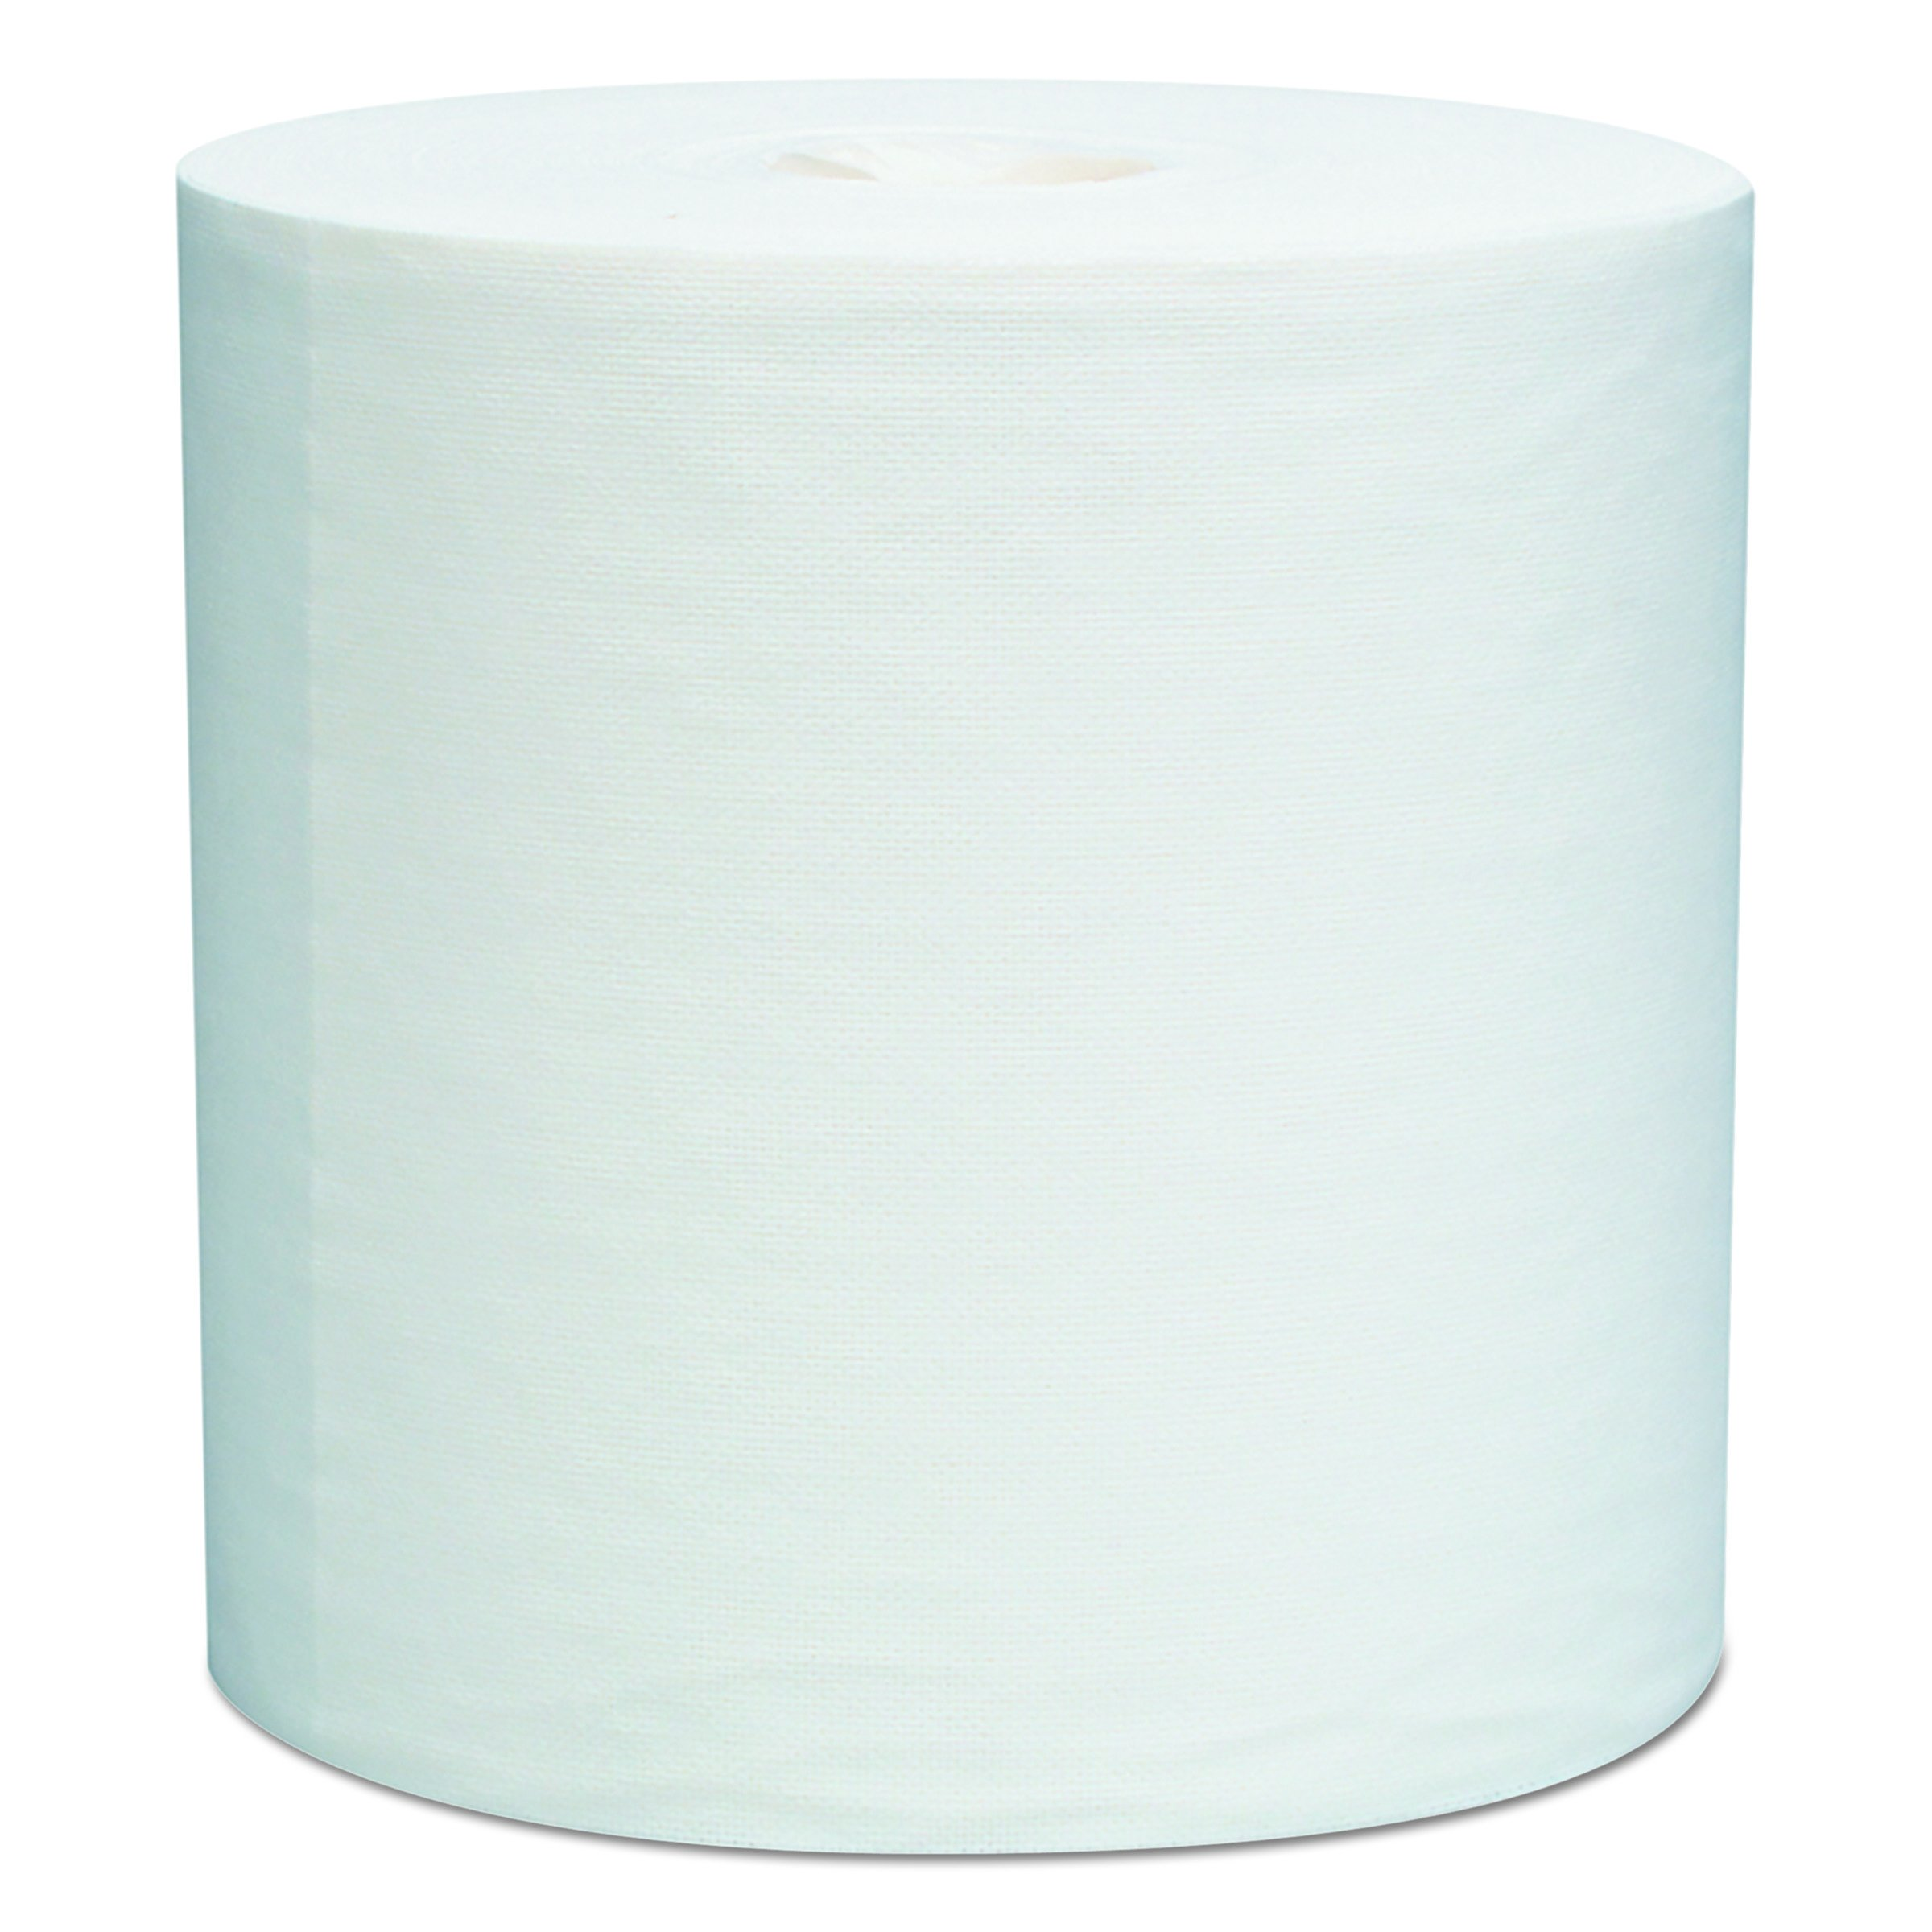 Wypall L30 DRC Wipers (05830), Strong and Soft Wipes, Center-Pull Rolls, White, 150 Sheets / Roll, 6 Rolls / Case, 900 Wipes / Case